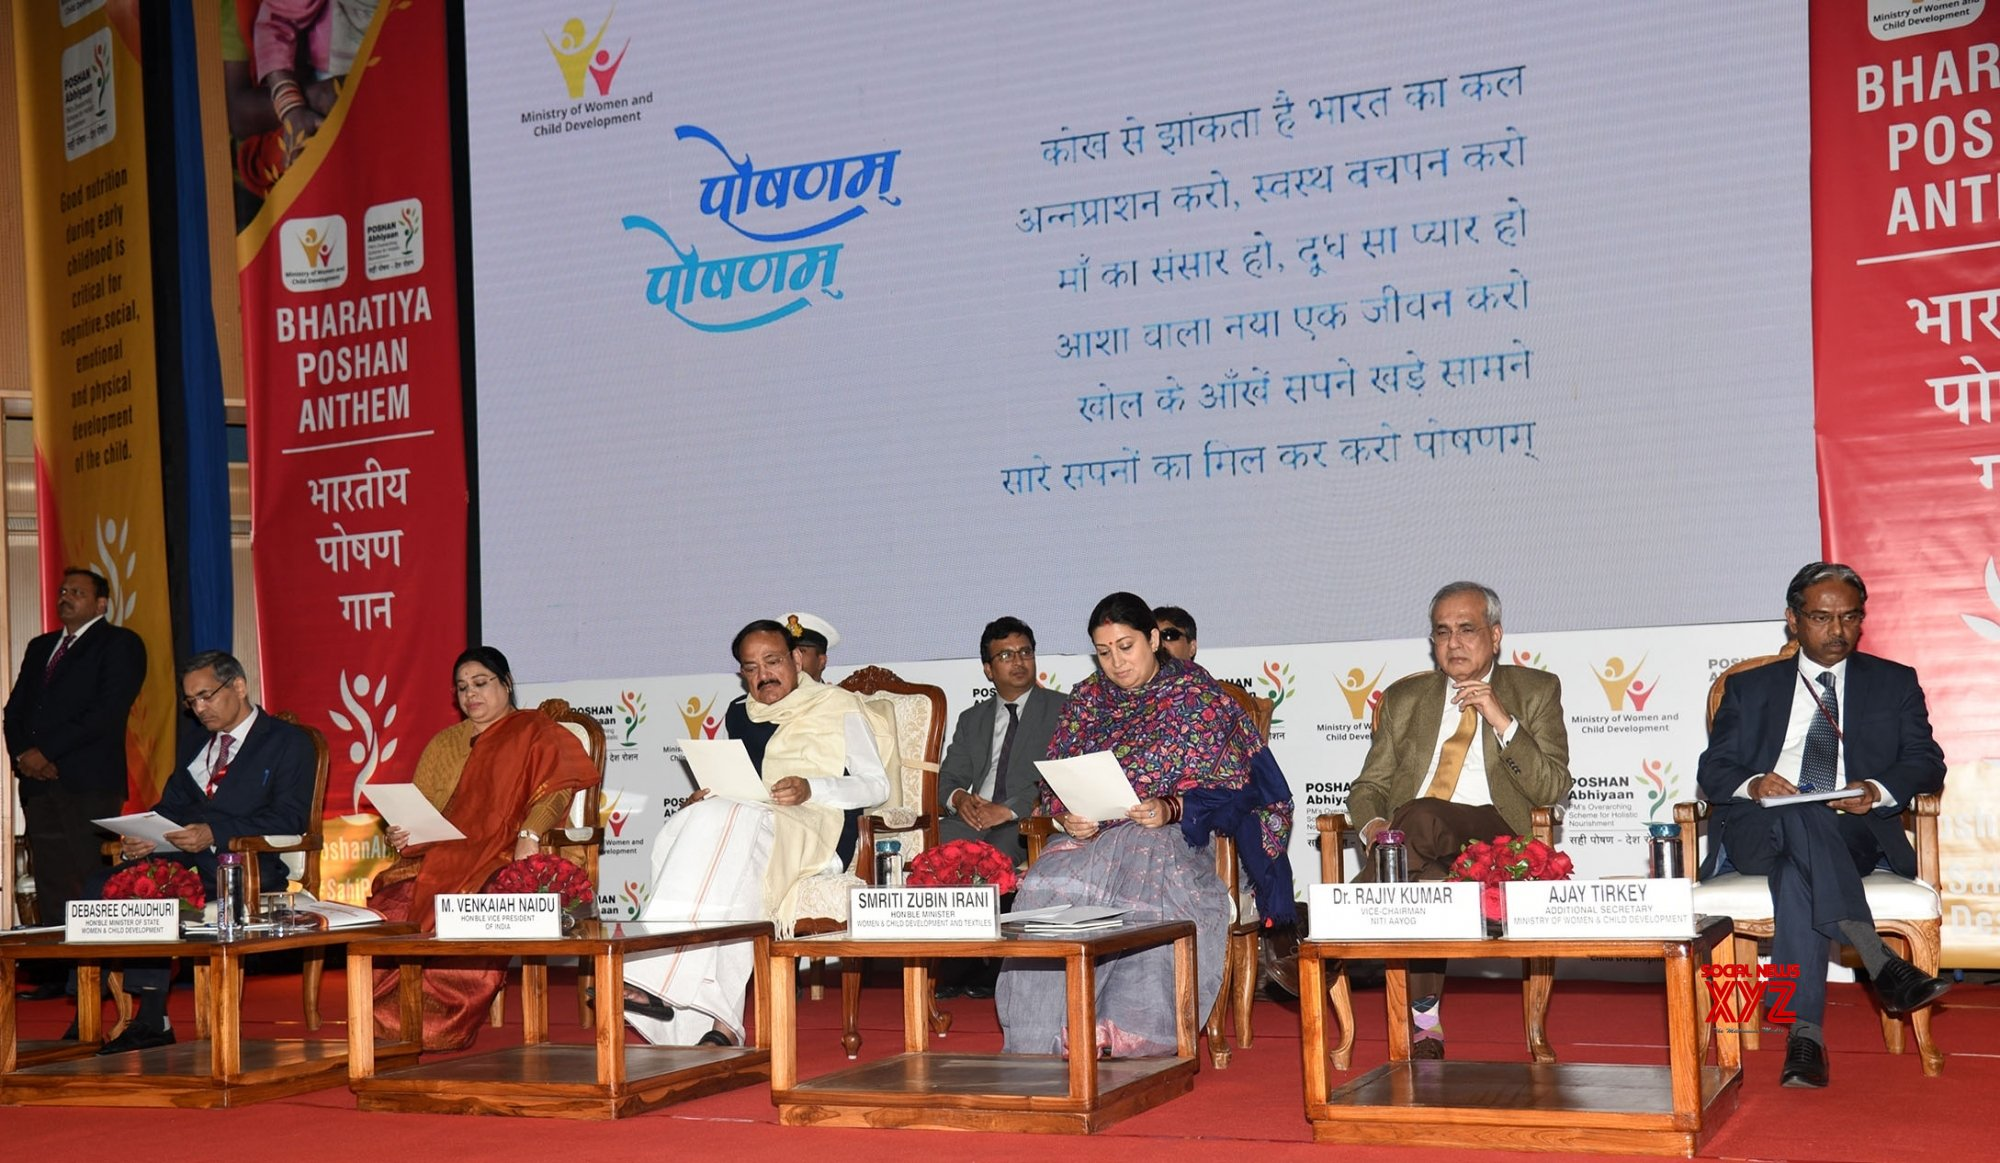 Vice President Naidu launches nutrition anthem